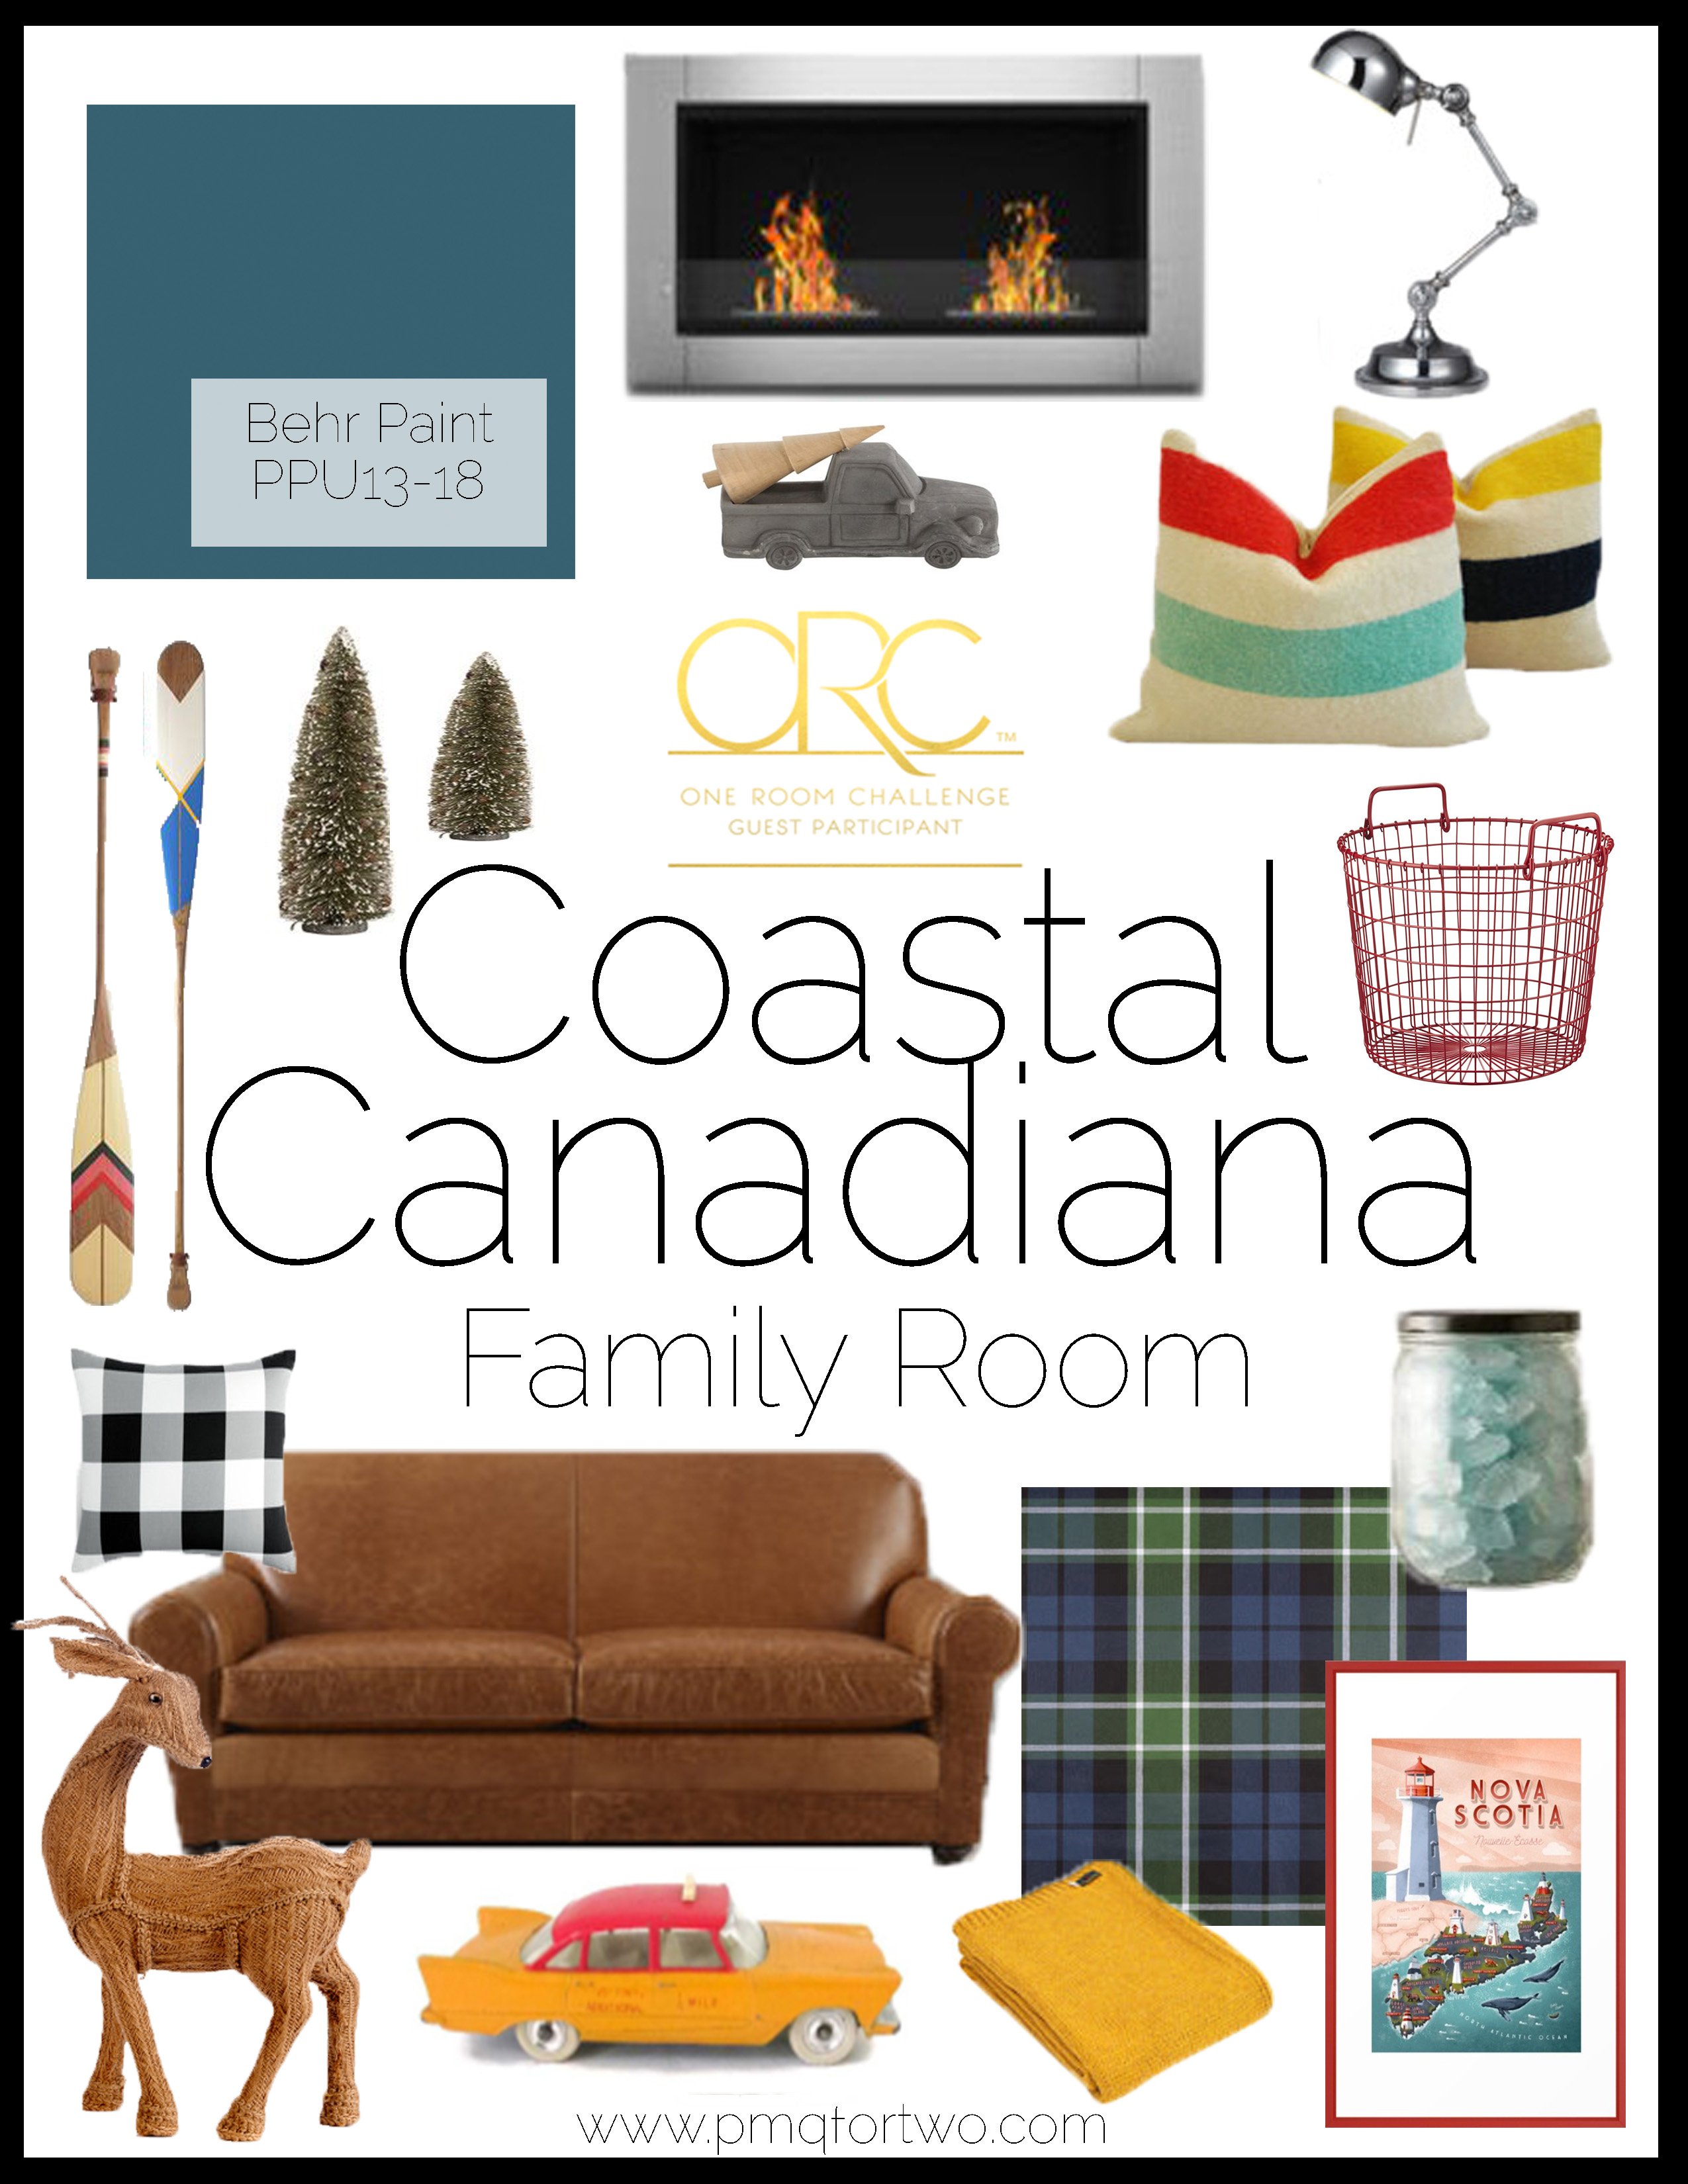 coastal-canadiana-one-room-challenge